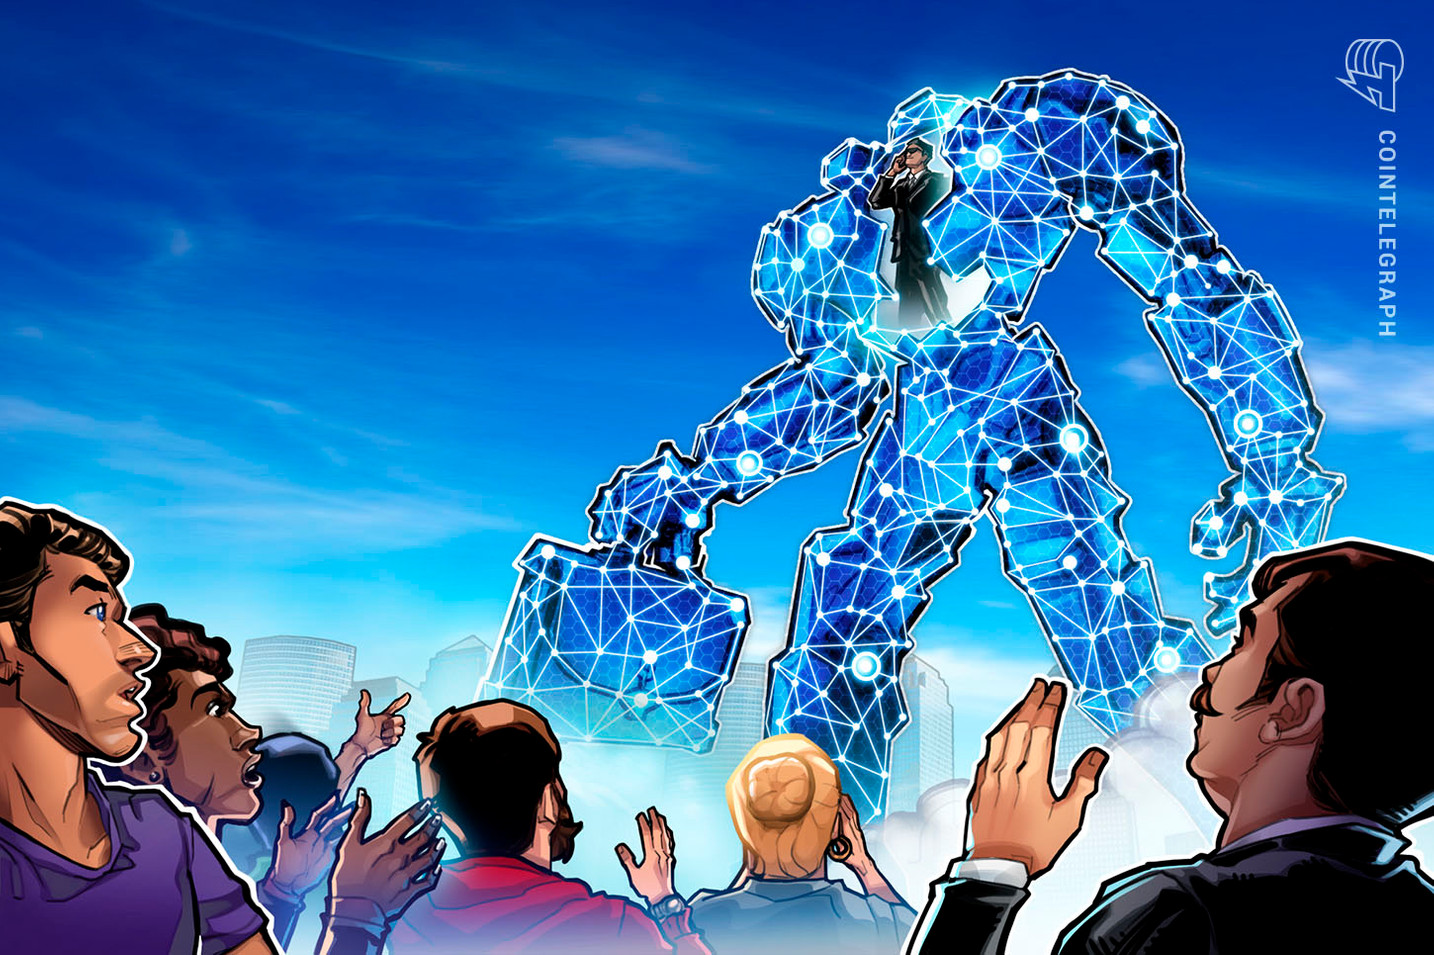 JP Morgan-Backed Firm Partners with Blockchain Startup Run By Former Deloitte Exec